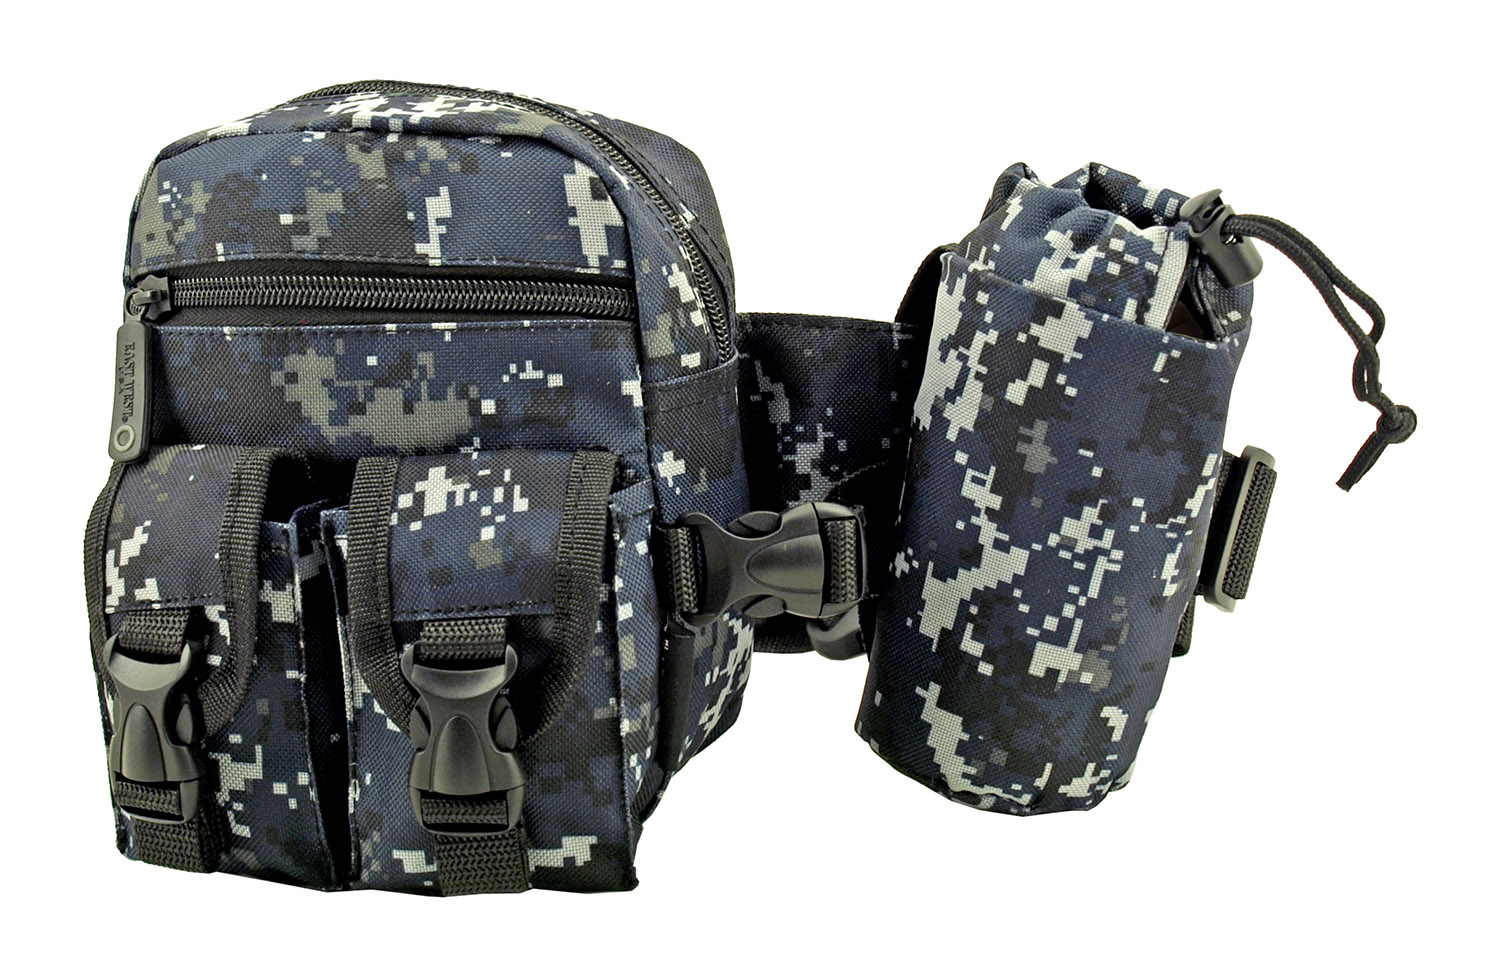 Rock Climbing Trail Hiking Tactical Specific Waist Hip Bag with Water Carrier - Blue Digital Camo